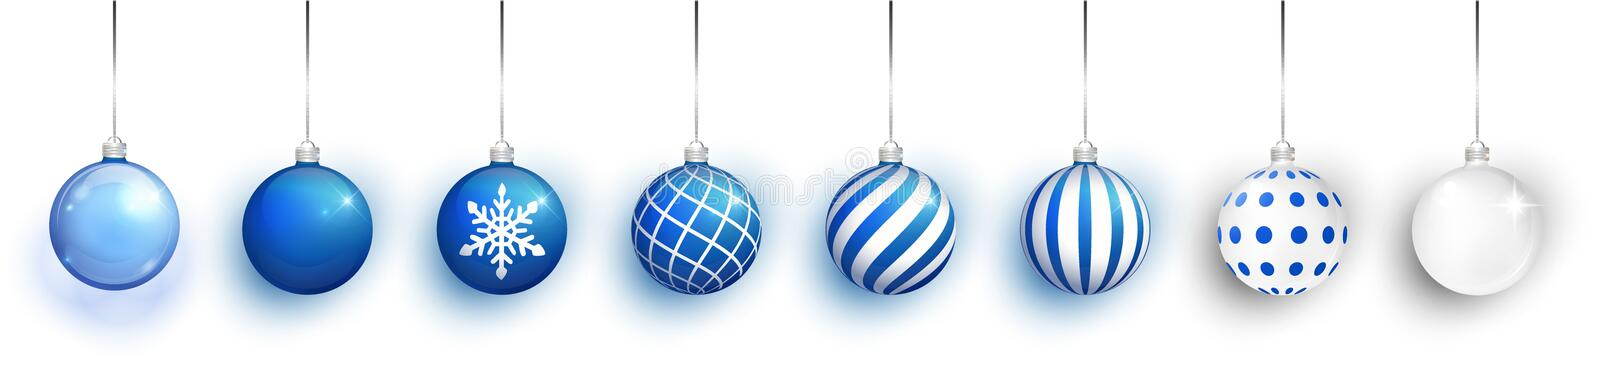 Blue Transparent and Christmas ball with snow effect set. Xmas glass ball on white background. Holiday decoration royalty free illustration